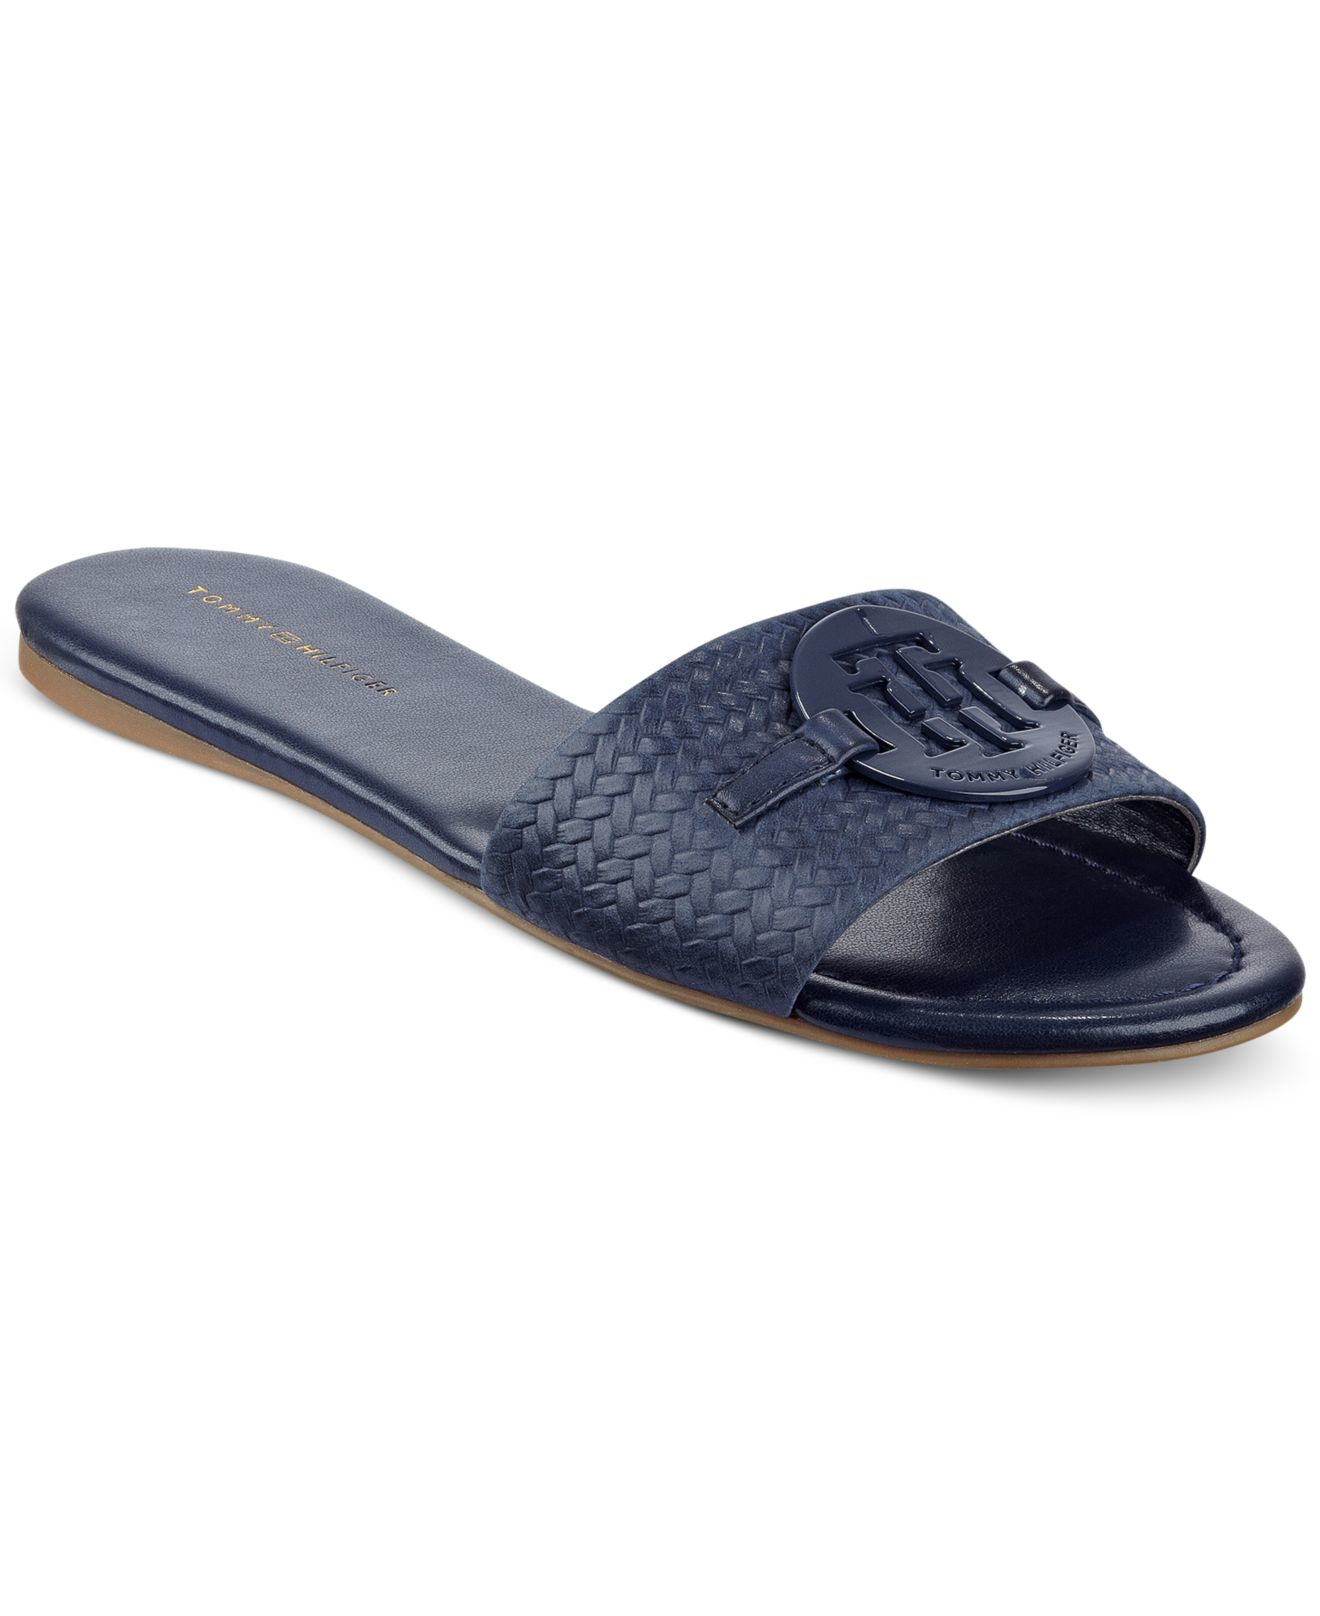 834a44fbbd21d Lyst - Tommy Hilfiger Fabre Logo Slide-on Sandals in Blue